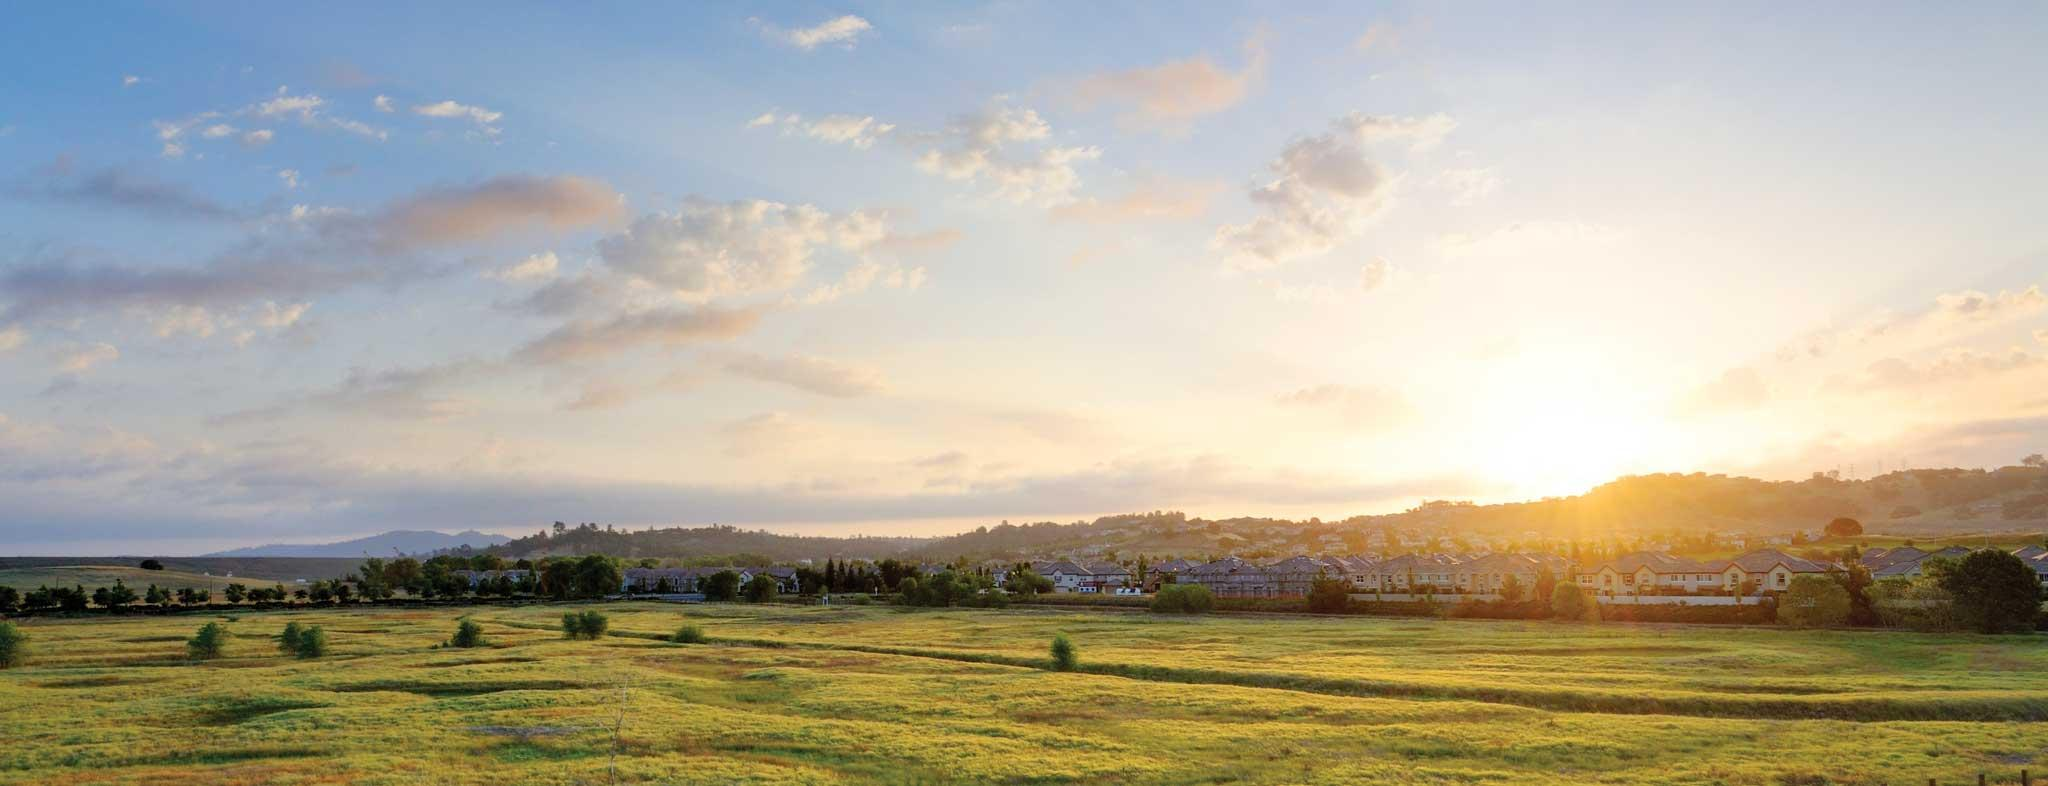 Woodbury, a thoughtfully designed community of 56 new homes - with views of Mount Diablo - is within walking distance of restaurants, shops and the Lafayette Reservoir.